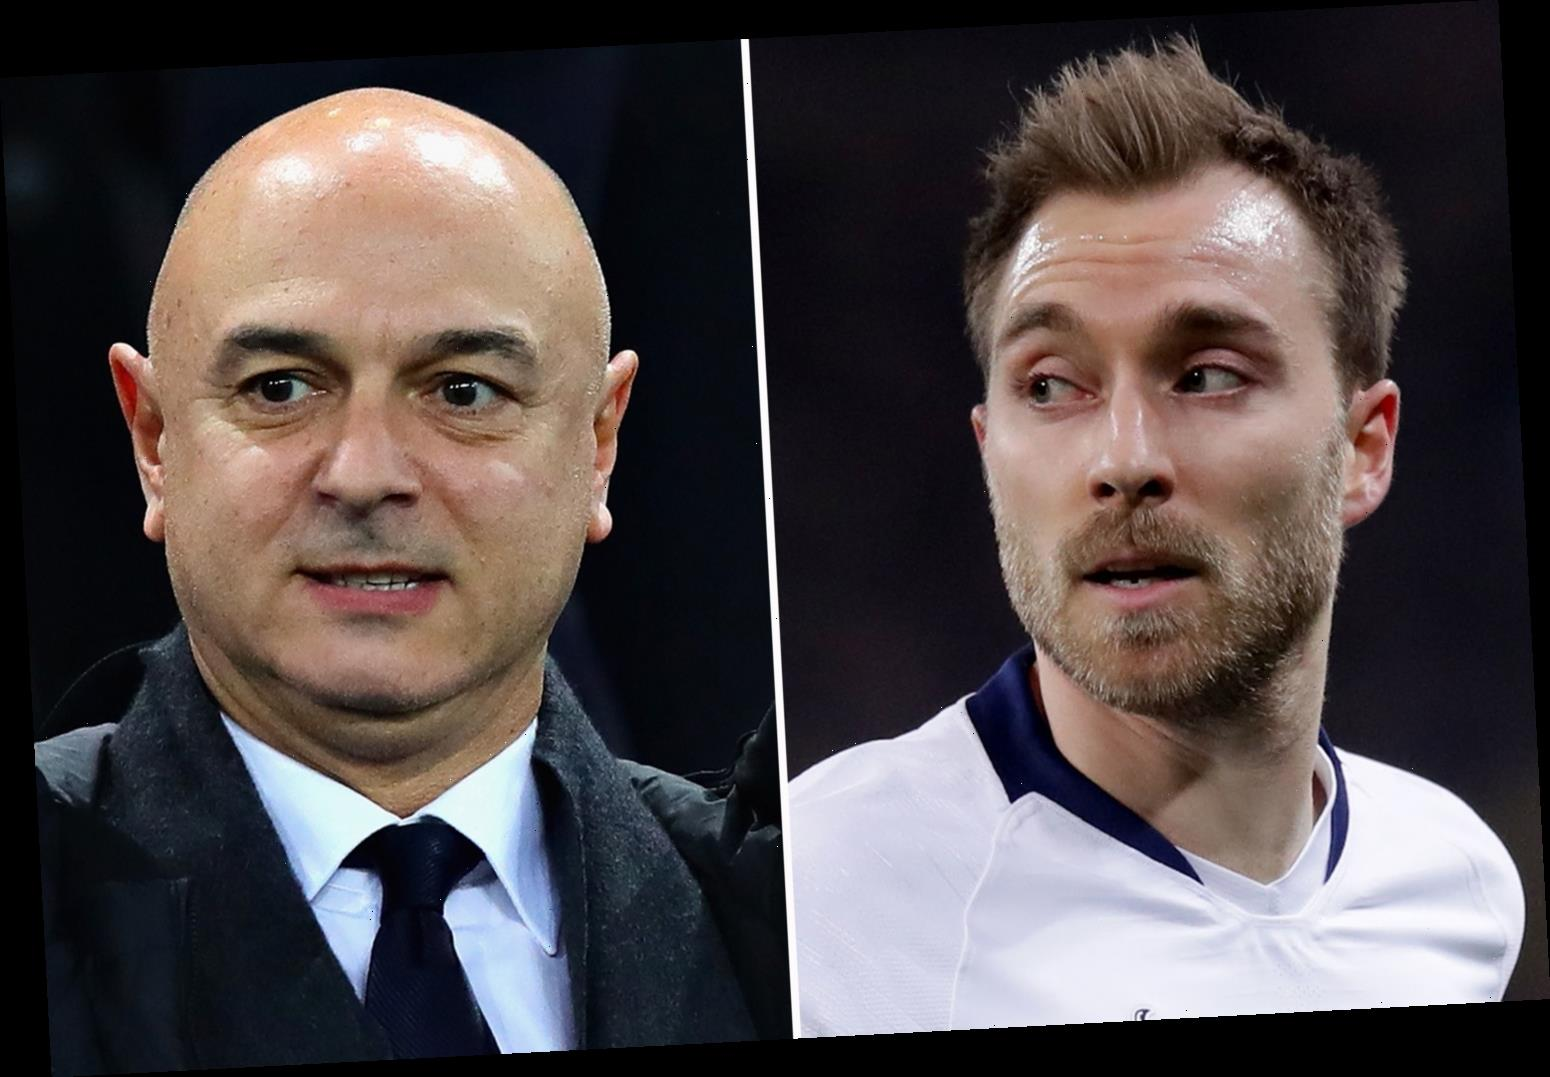 Christian Eriksen 'snubbed' Man Utd transfer after making promise to Daniel Levy that he wouldn't join a rival – The Sun